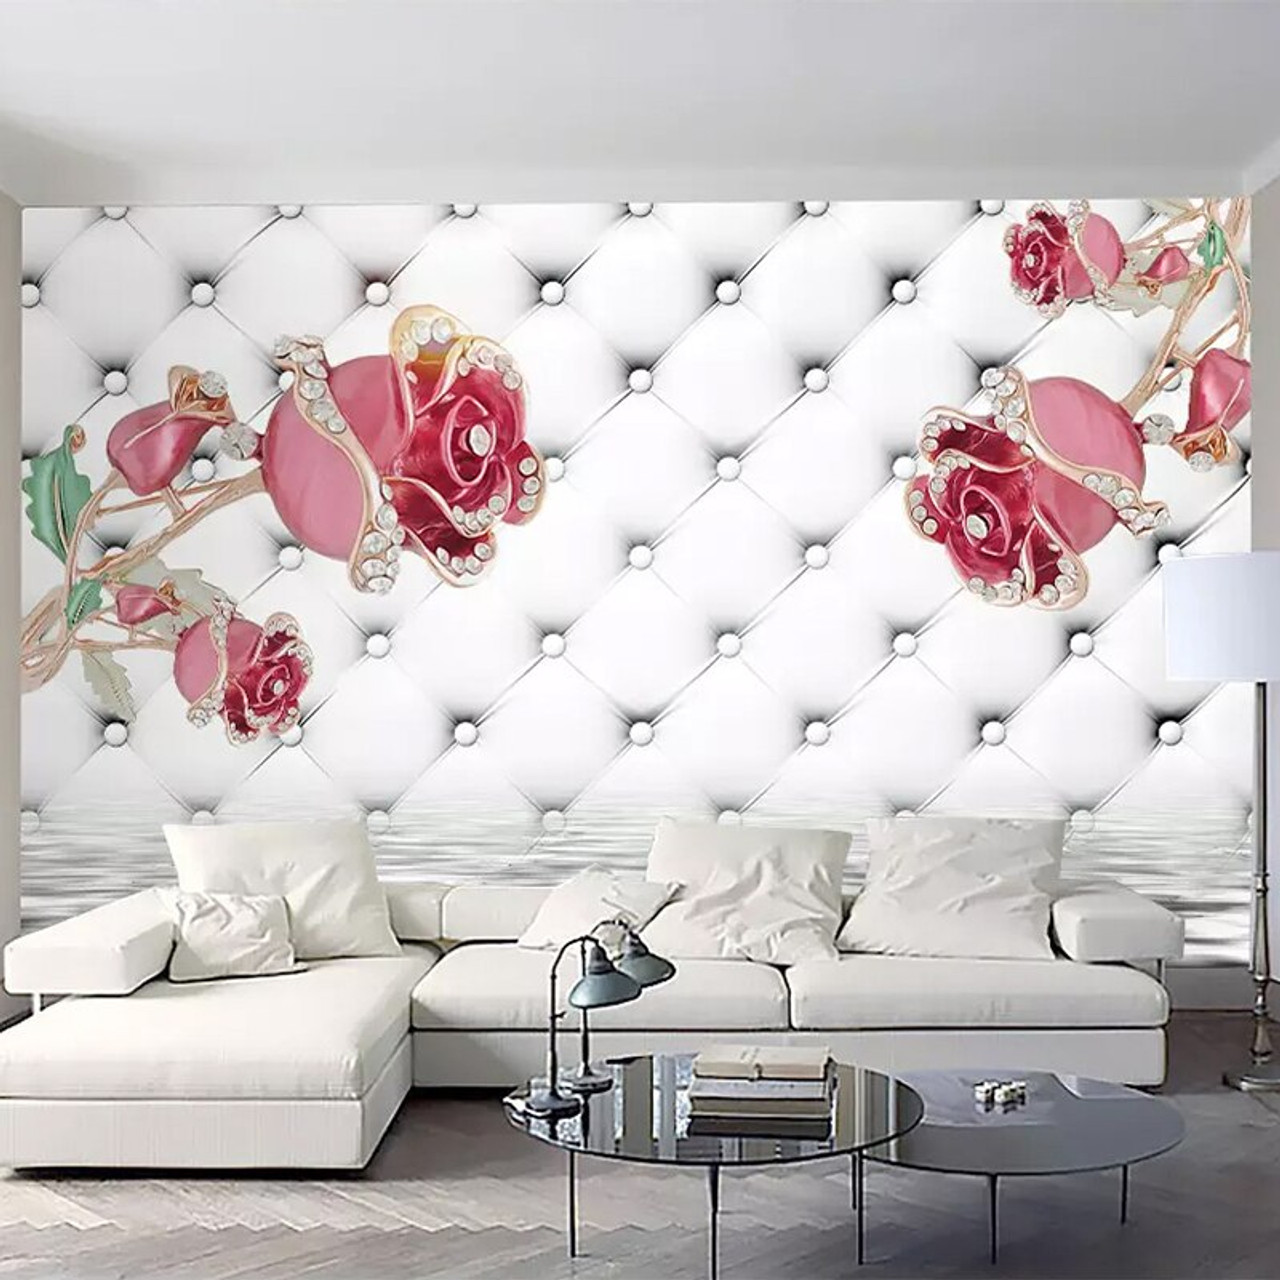 Custom Murals Wallpaper 3d Luxury Pink Roses Soft Roll Photo Wall